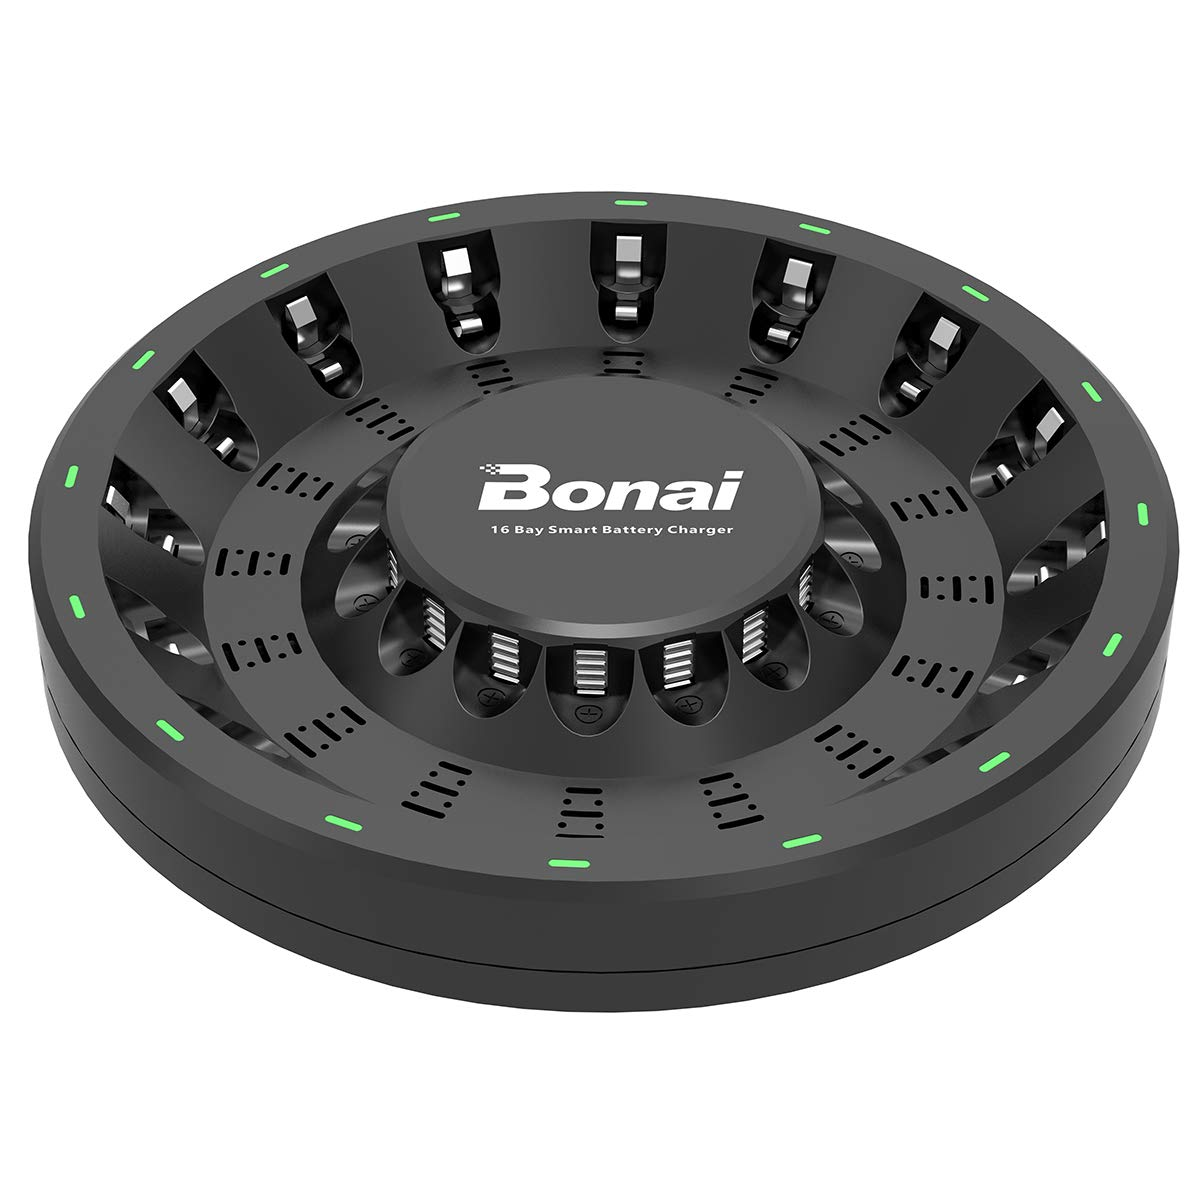 Bonai 16 Bay Aa Aaa Smart Battery Charger Round For Simple Nicd Electronic Circuits Rechargeable Nimh Batteries With Adapter Home Audio Theater